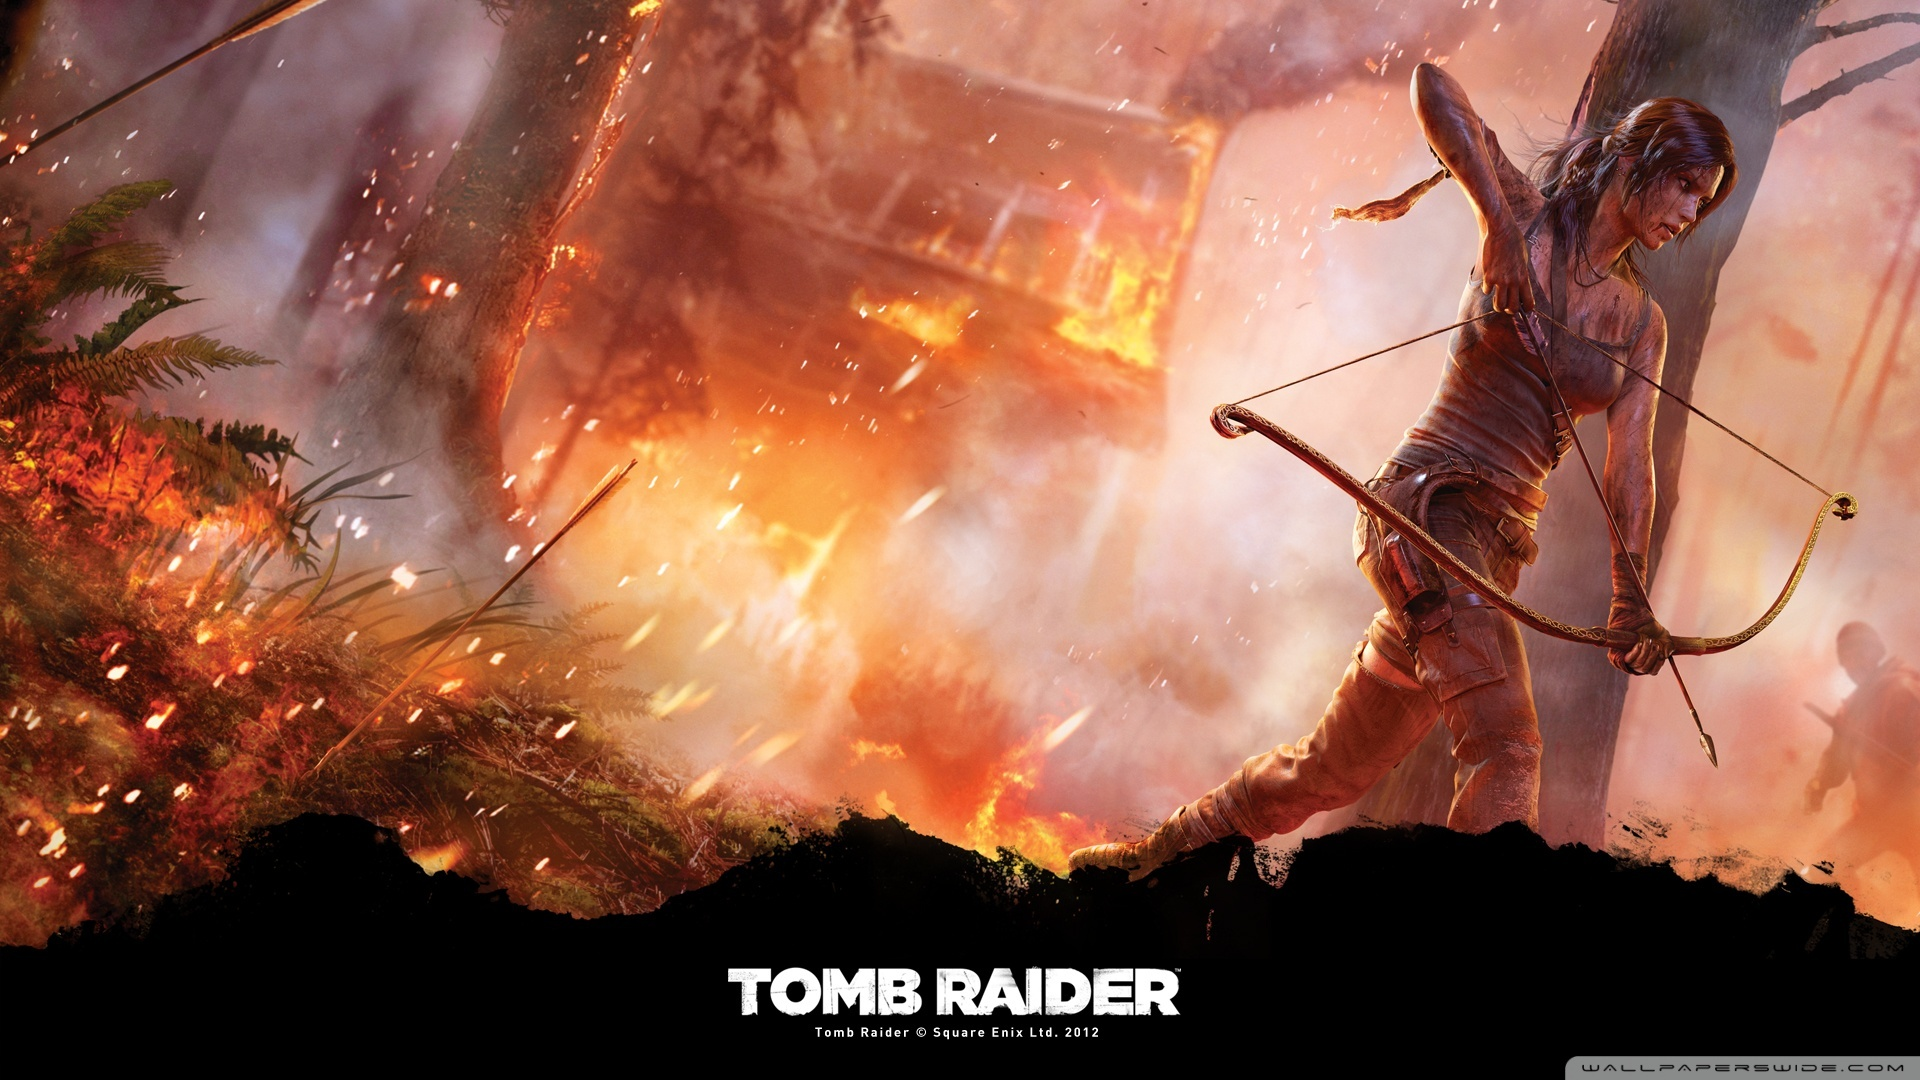 Varios Wallpapers de Tomb Raider [Parte 2]